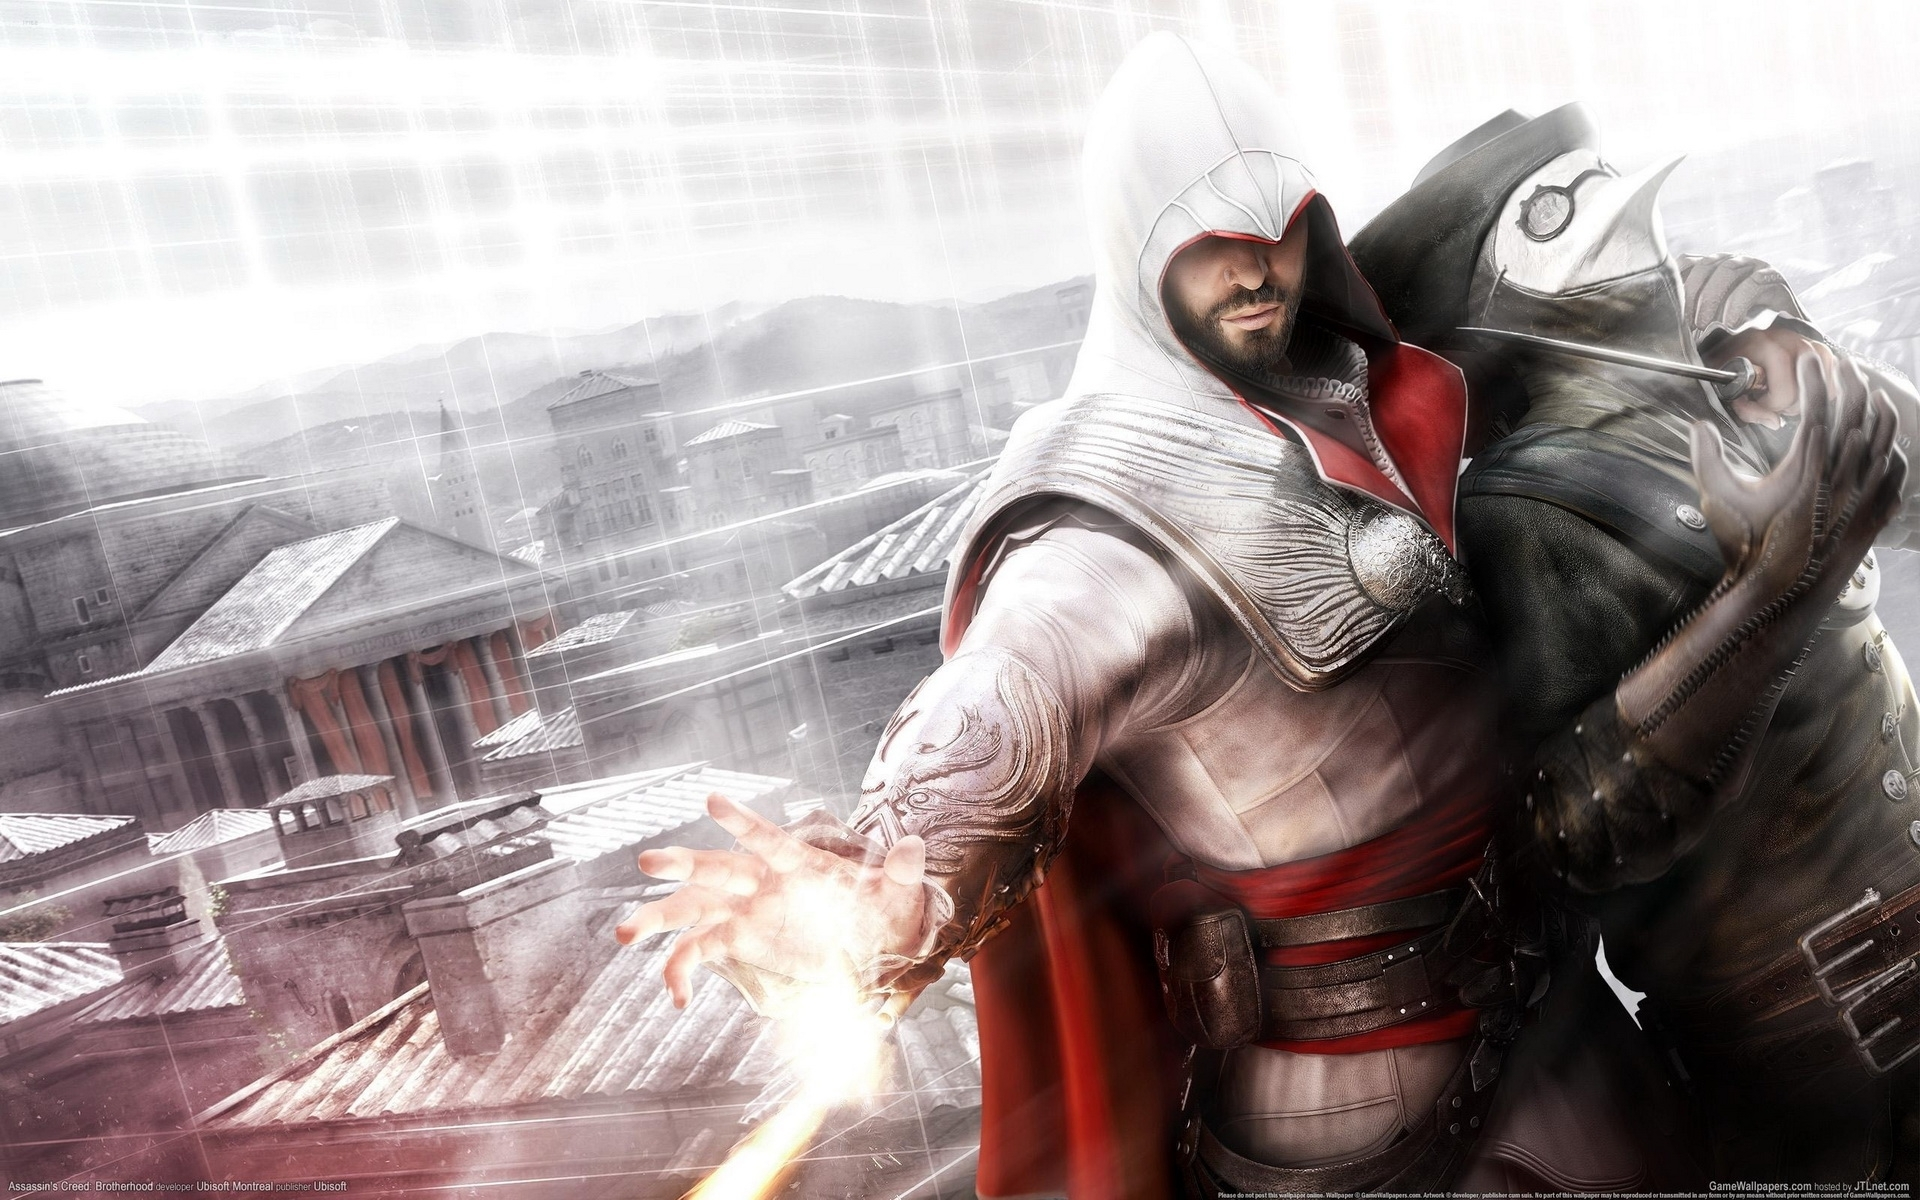 10 New Assassin's Creed 1 Wallpaper FULL HD 1080p For PC ...